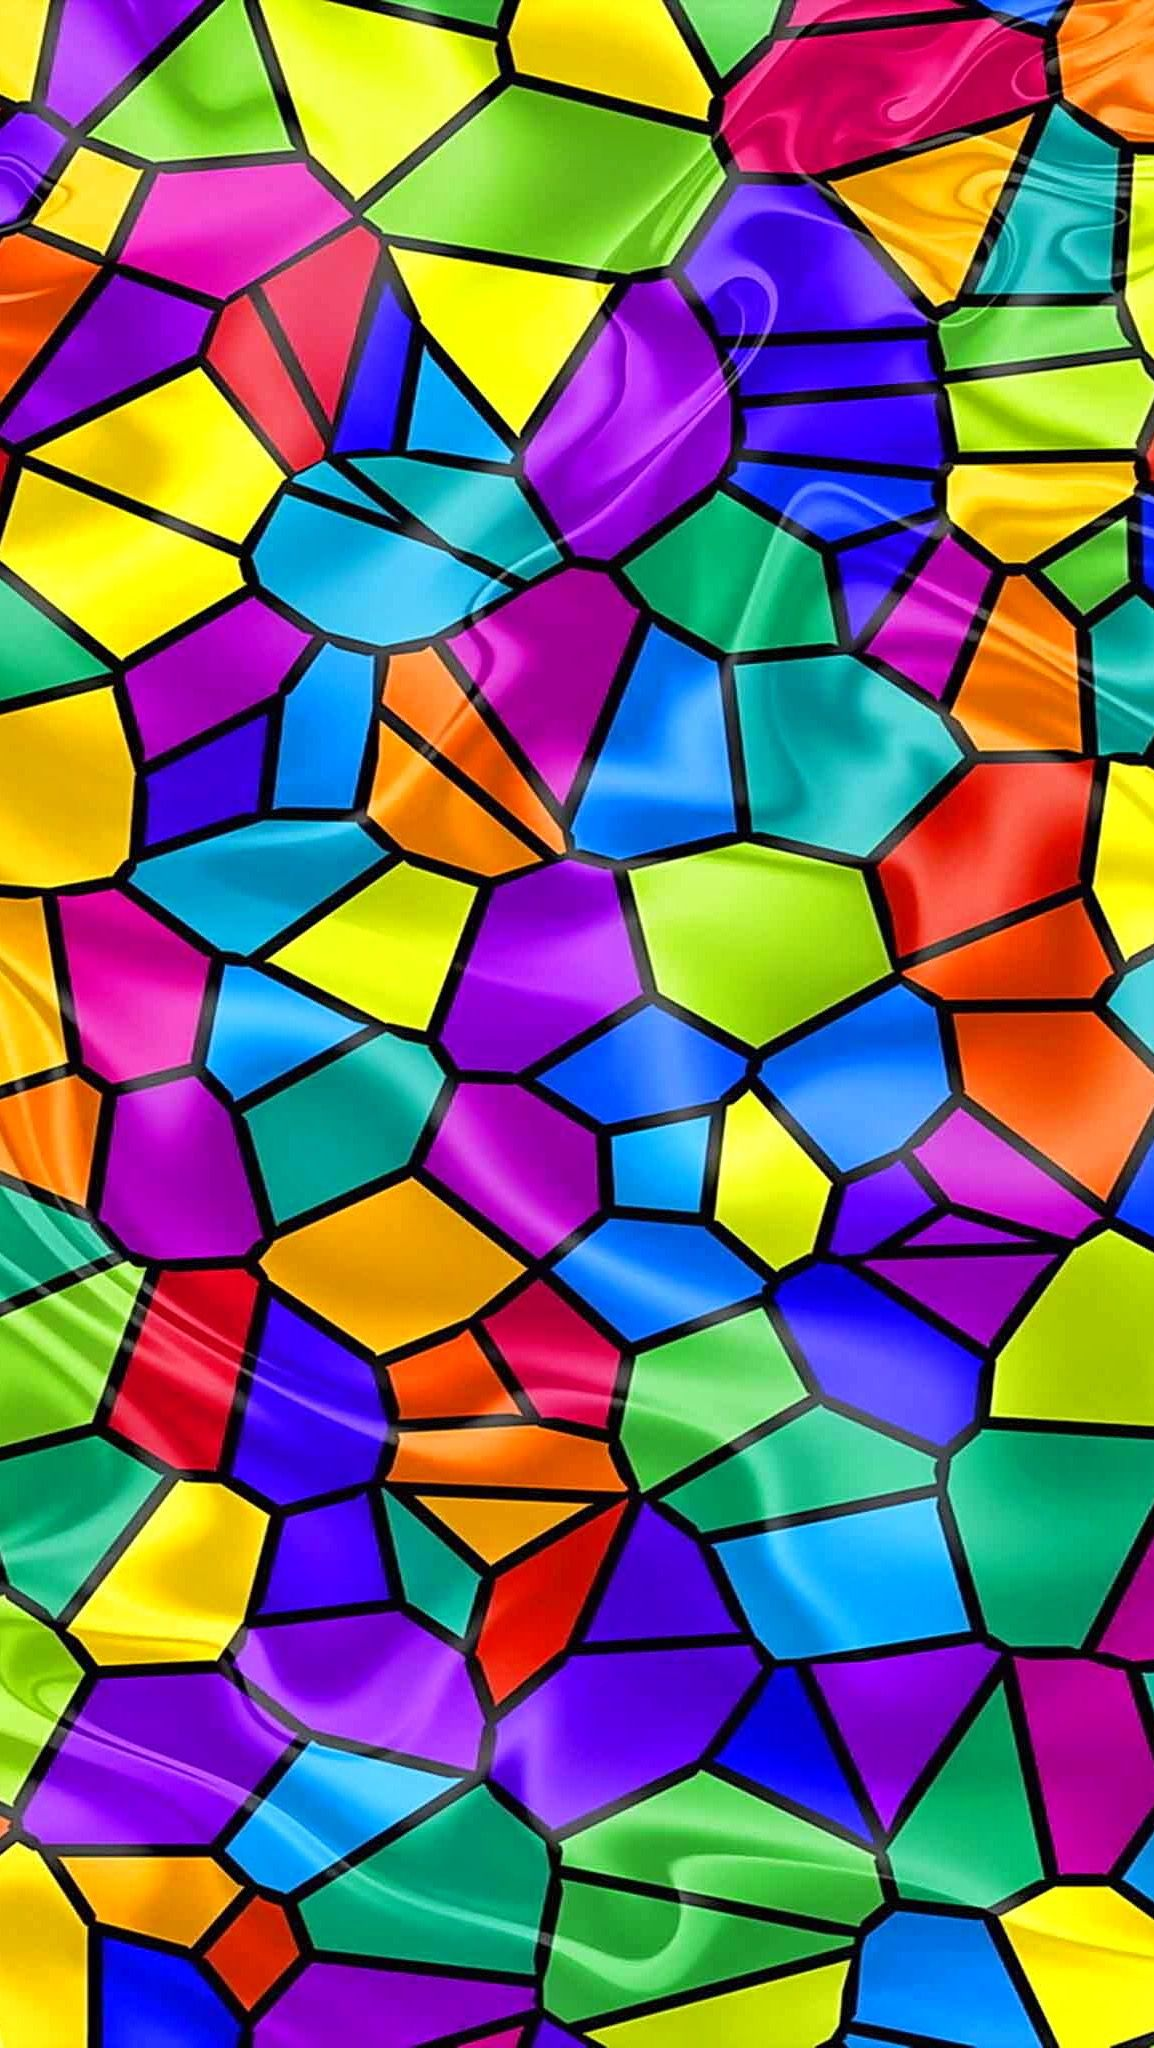 Hd Iphone Wallpaper Stain Glass Abstract Art Wallpaper Rainbow Wallpaper Wallpaper